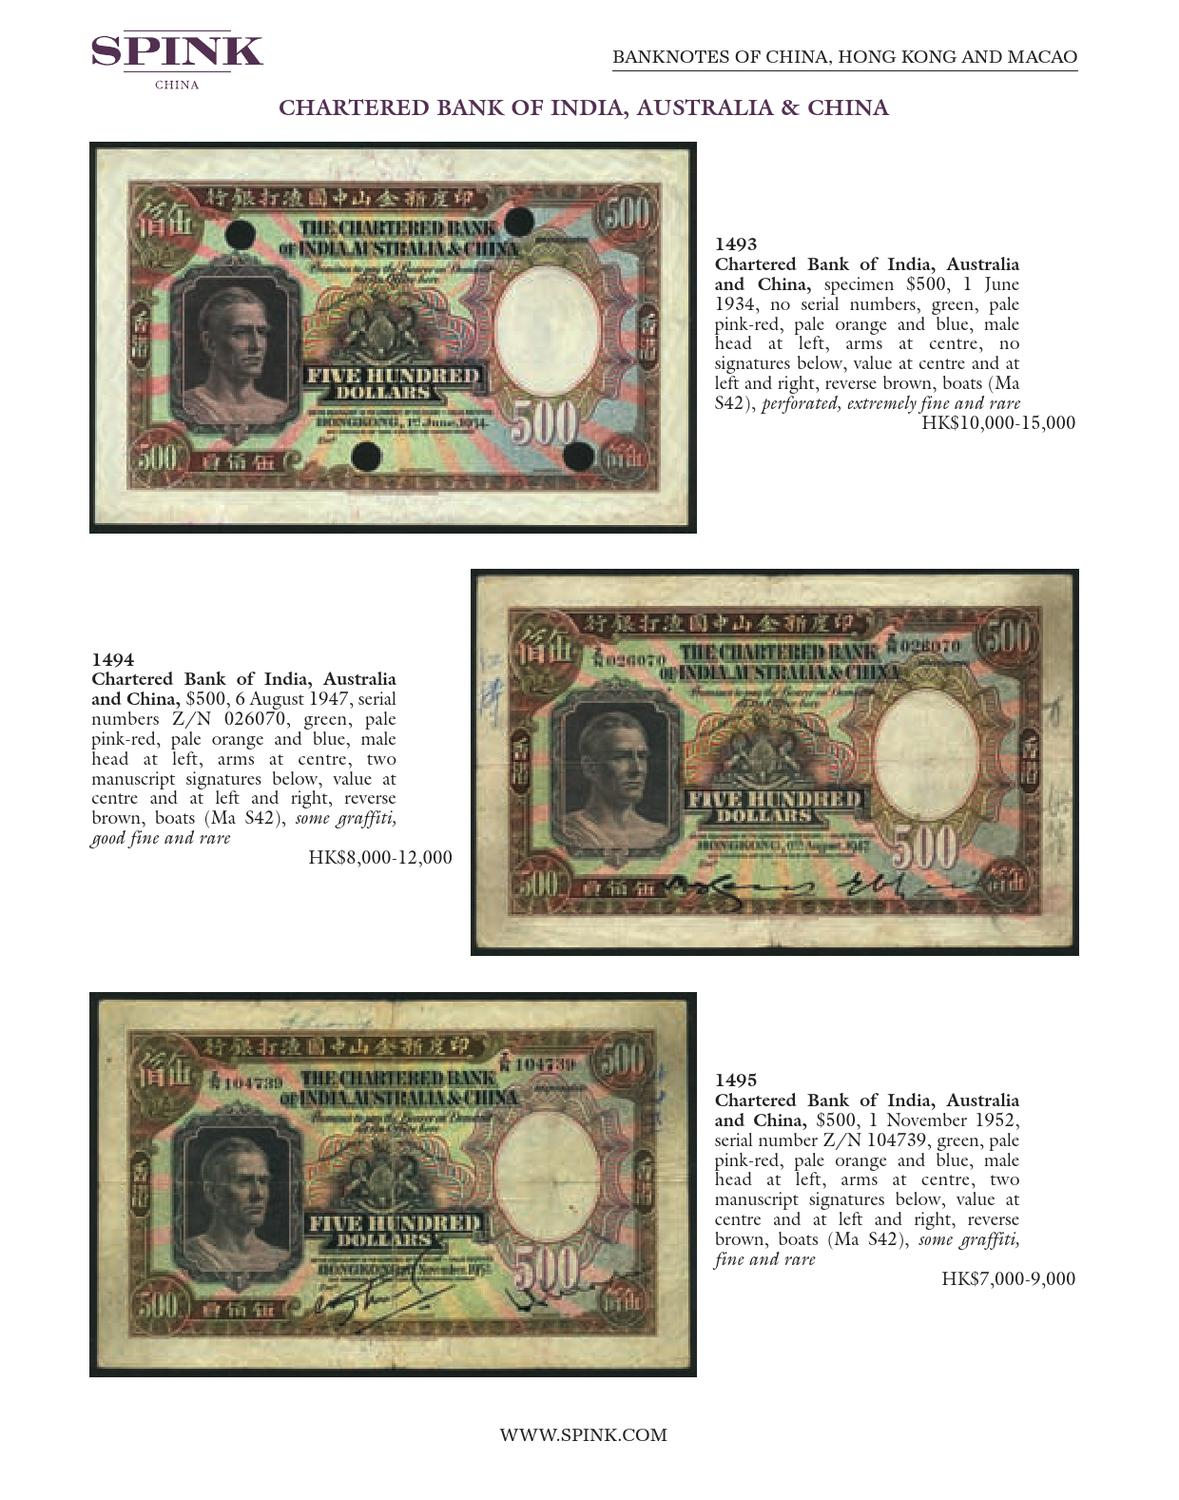 Banknotes, Bonds and Share Certificates and Coins of China